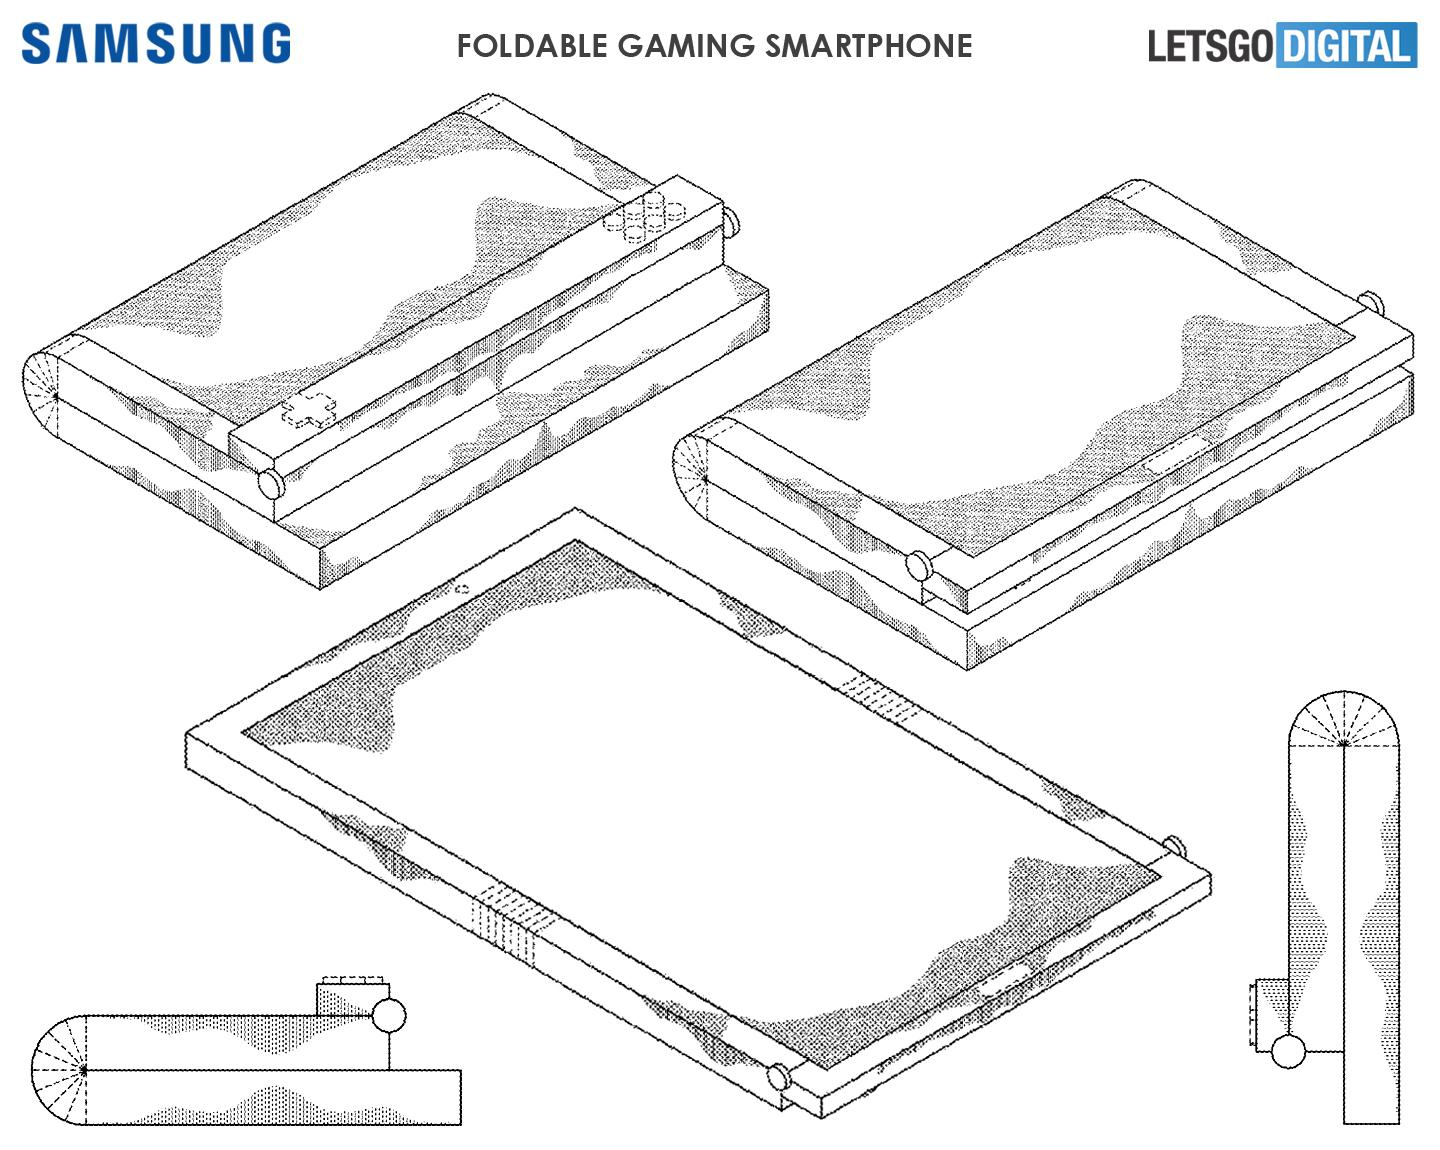 Samsung's foldable display smartphone shown off in a teaser video